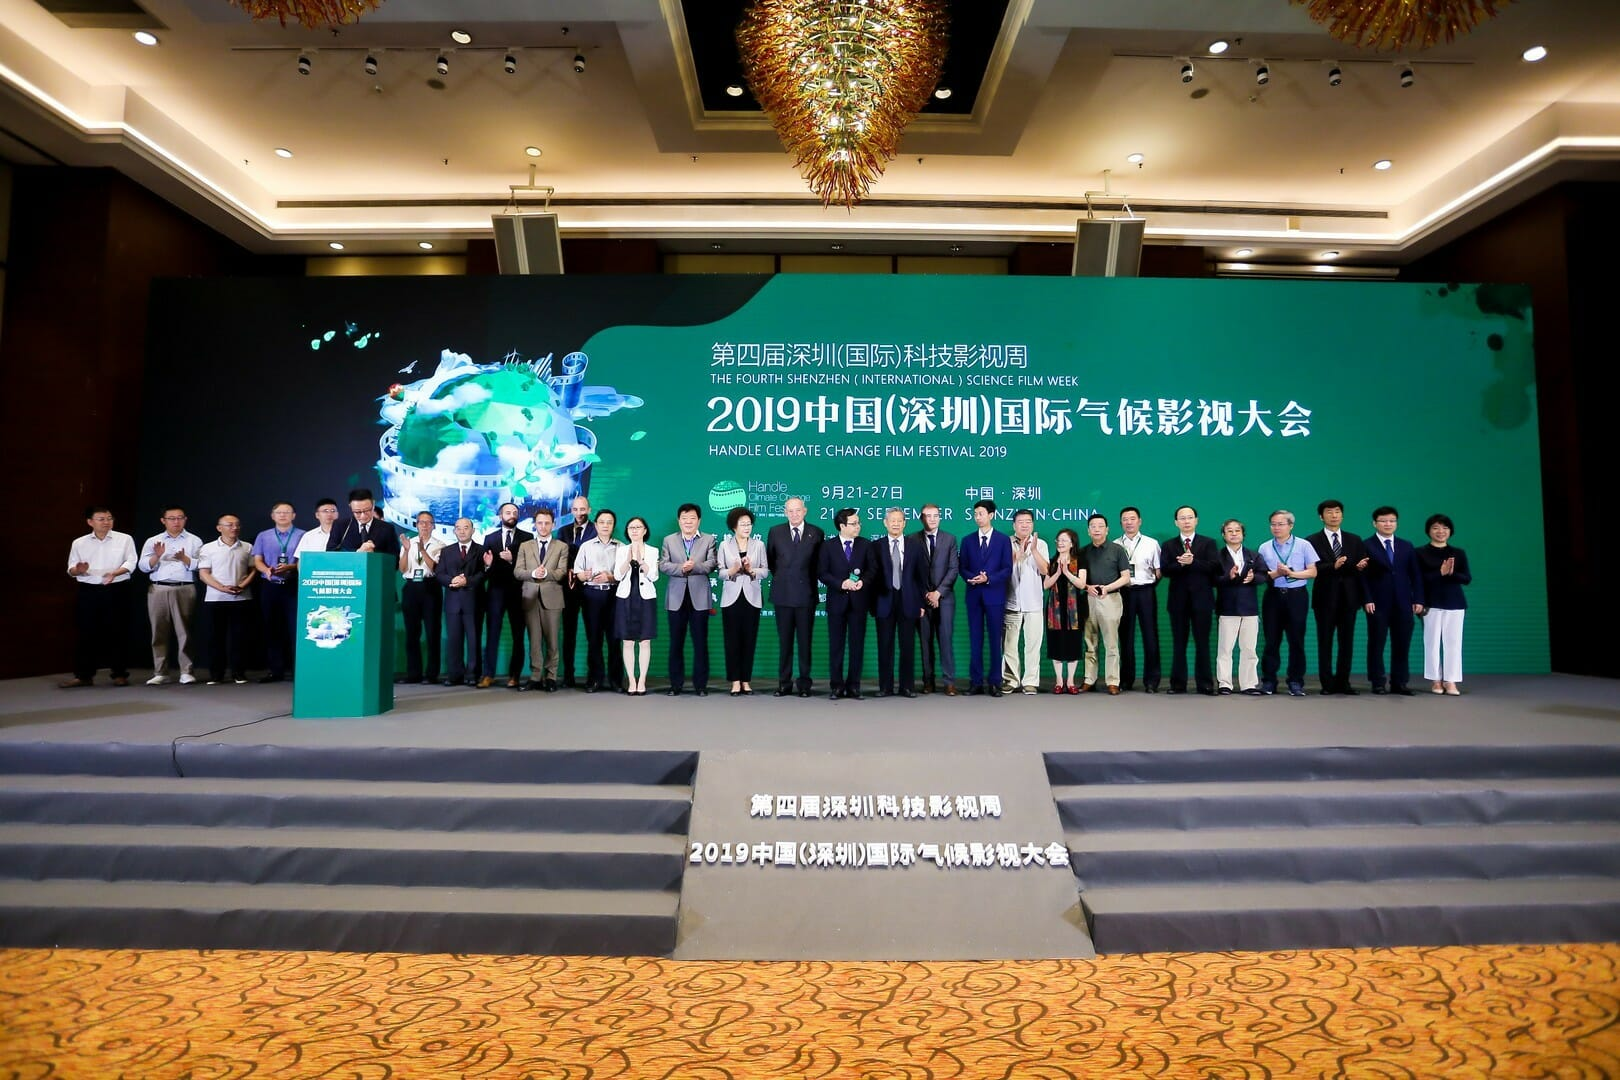 Apply now to the Handle Climate Change Film Festival in China 2020